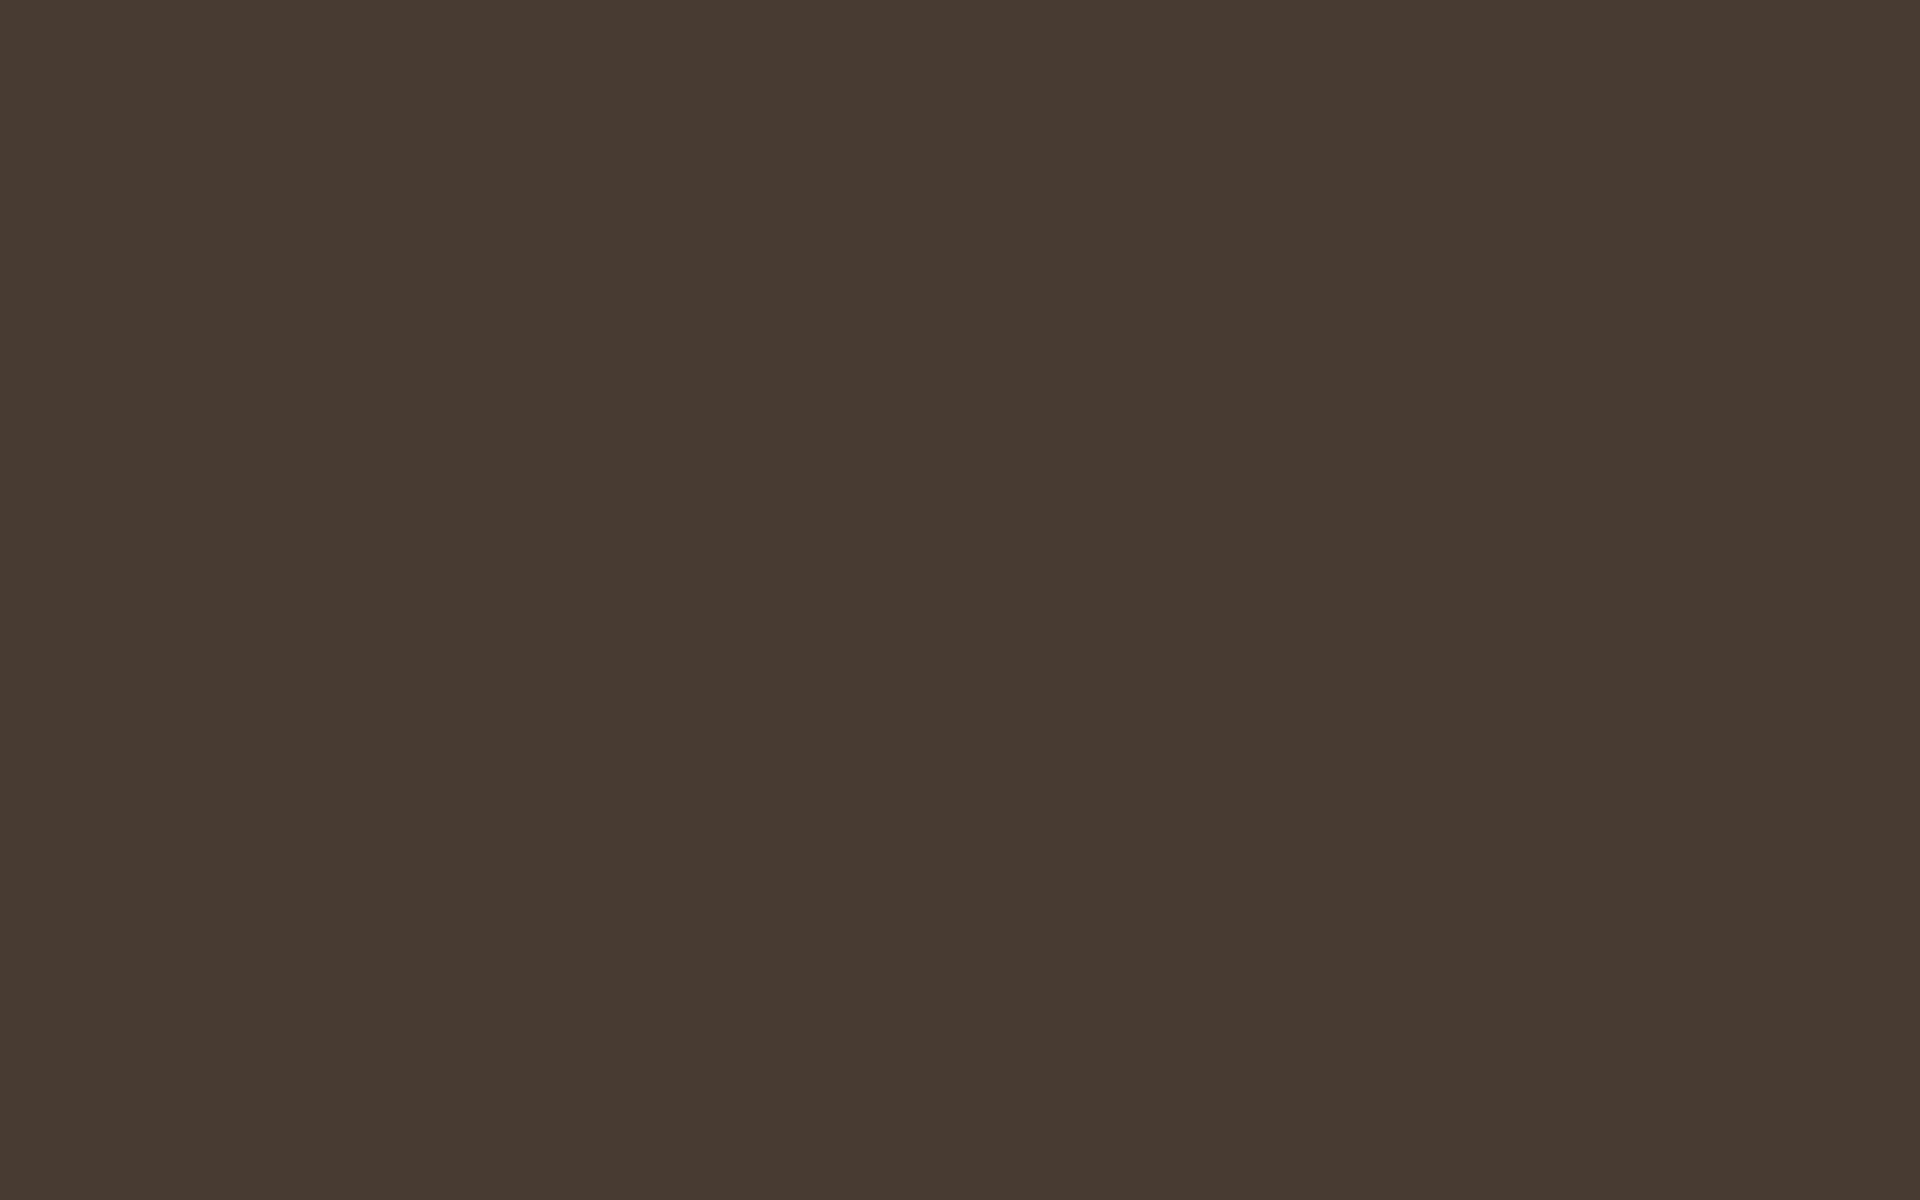 1920x1200 Dark Taupe Solid Color Background